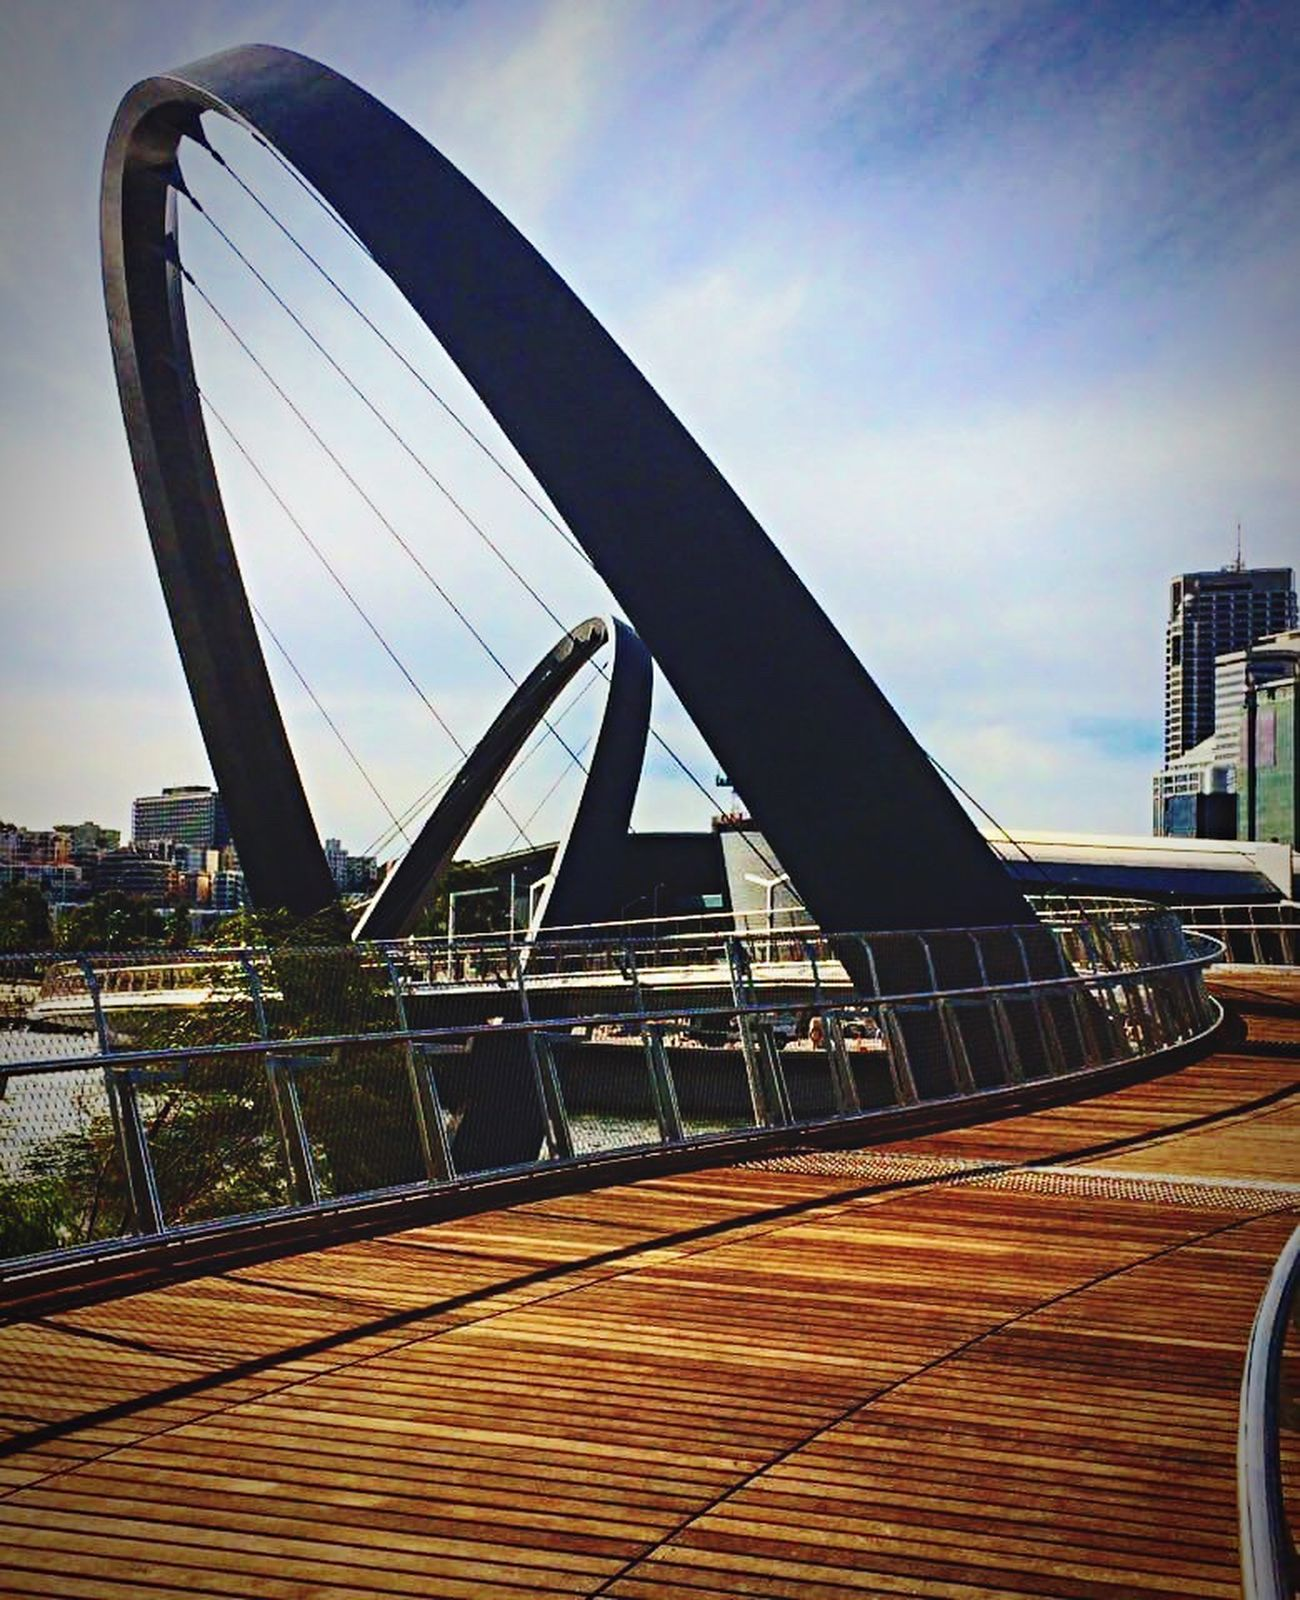 Elizabeth Quay Footbridge, the day before opening to the public